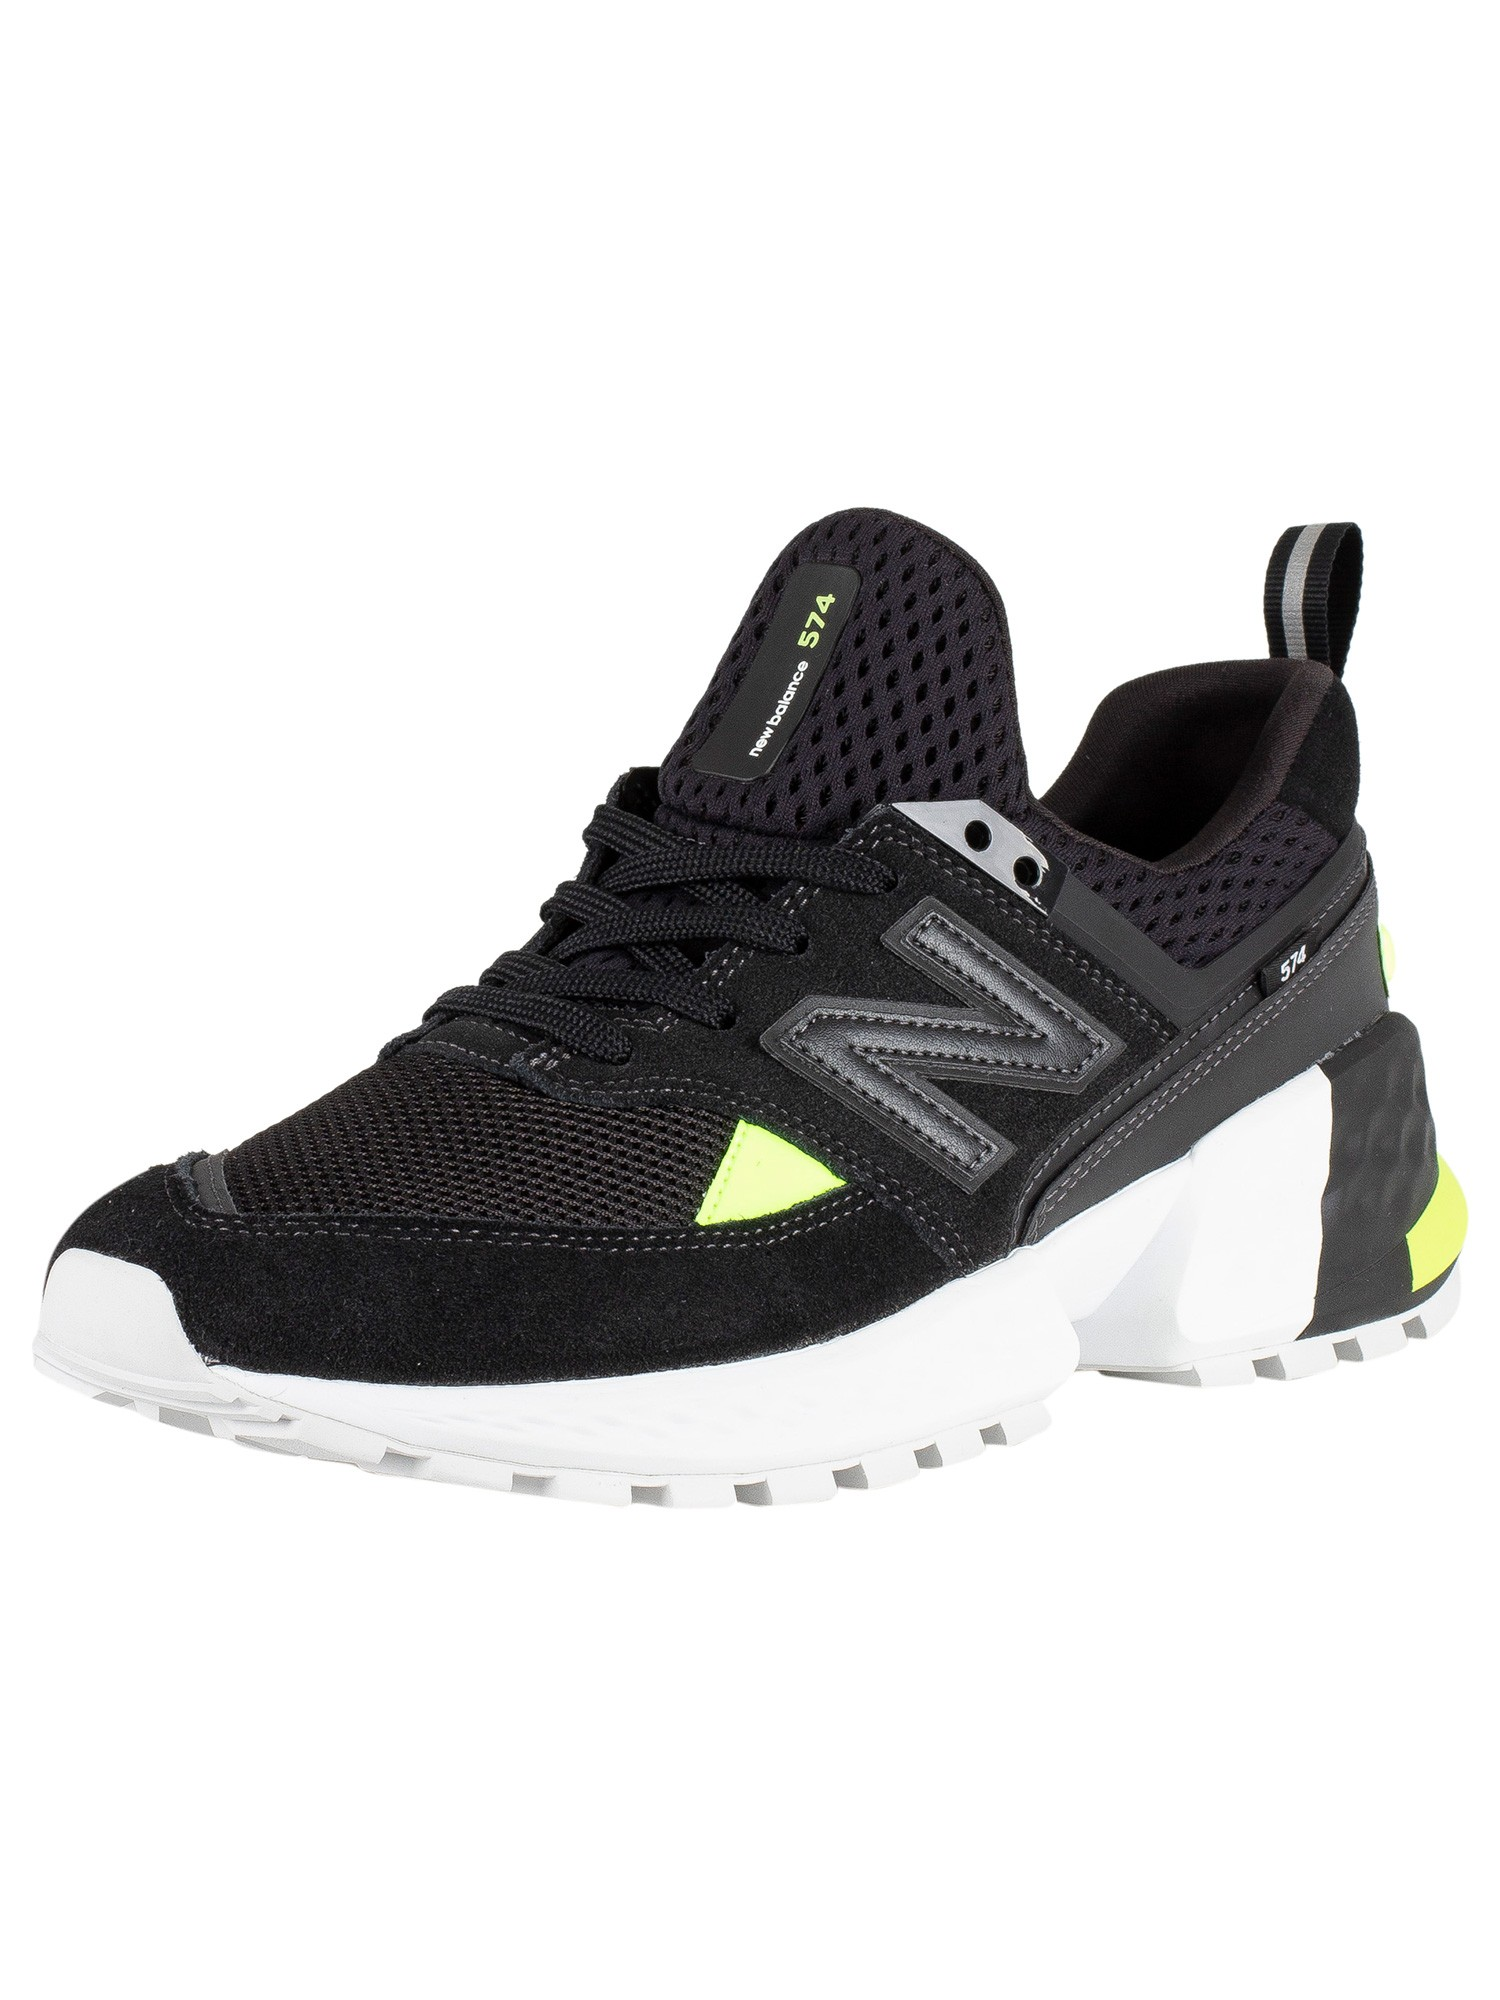 outlet store 136a9 2bd31 New Balance 574 Suede Trainers - Black